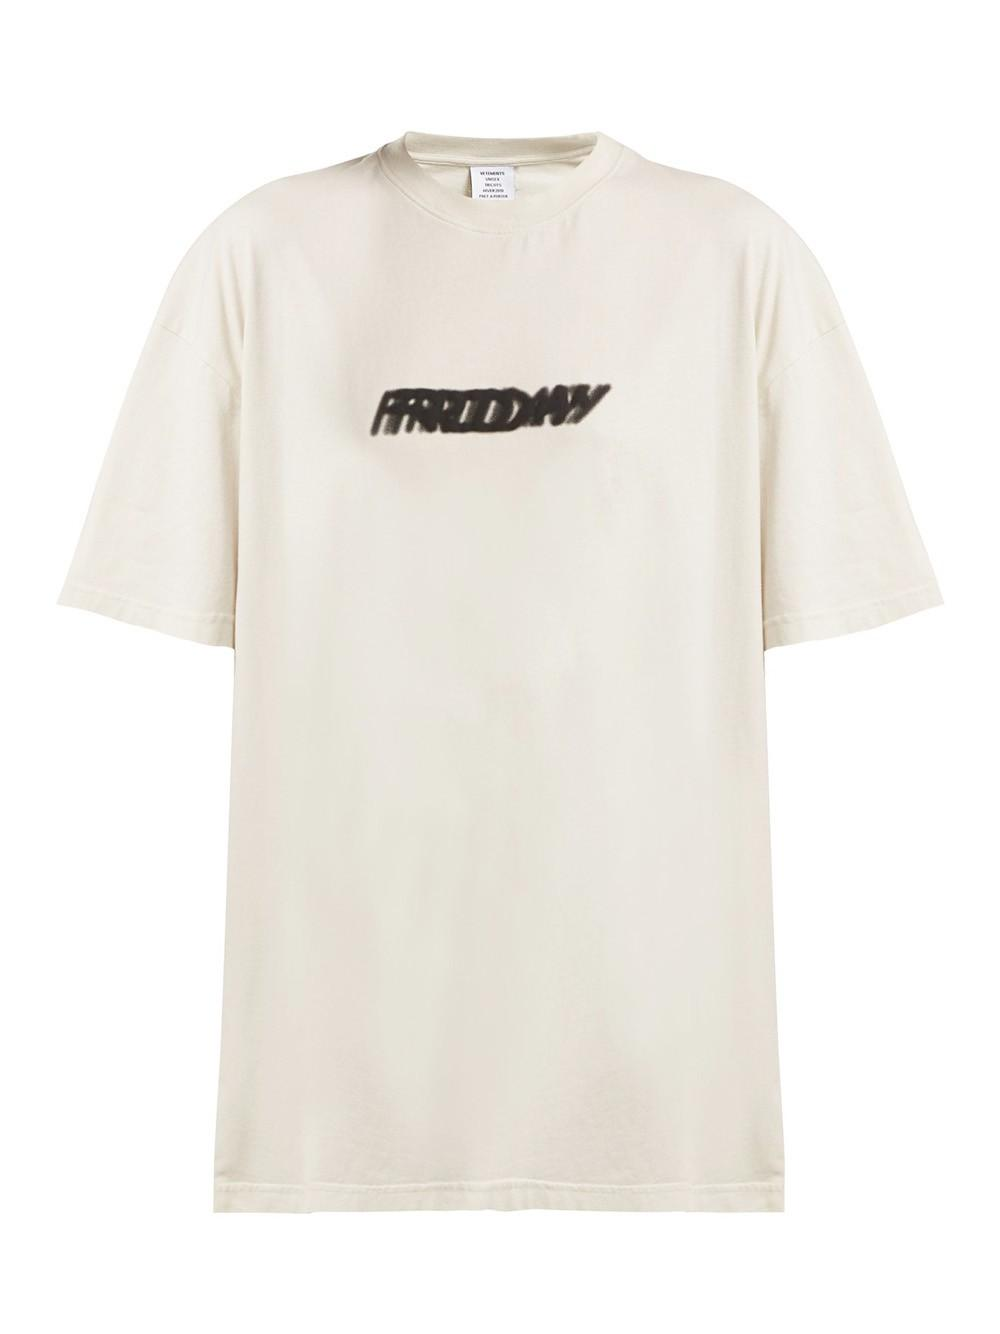 5a19acb6 Vetements Weekday T-shirt in White - Save 13% - Lyst